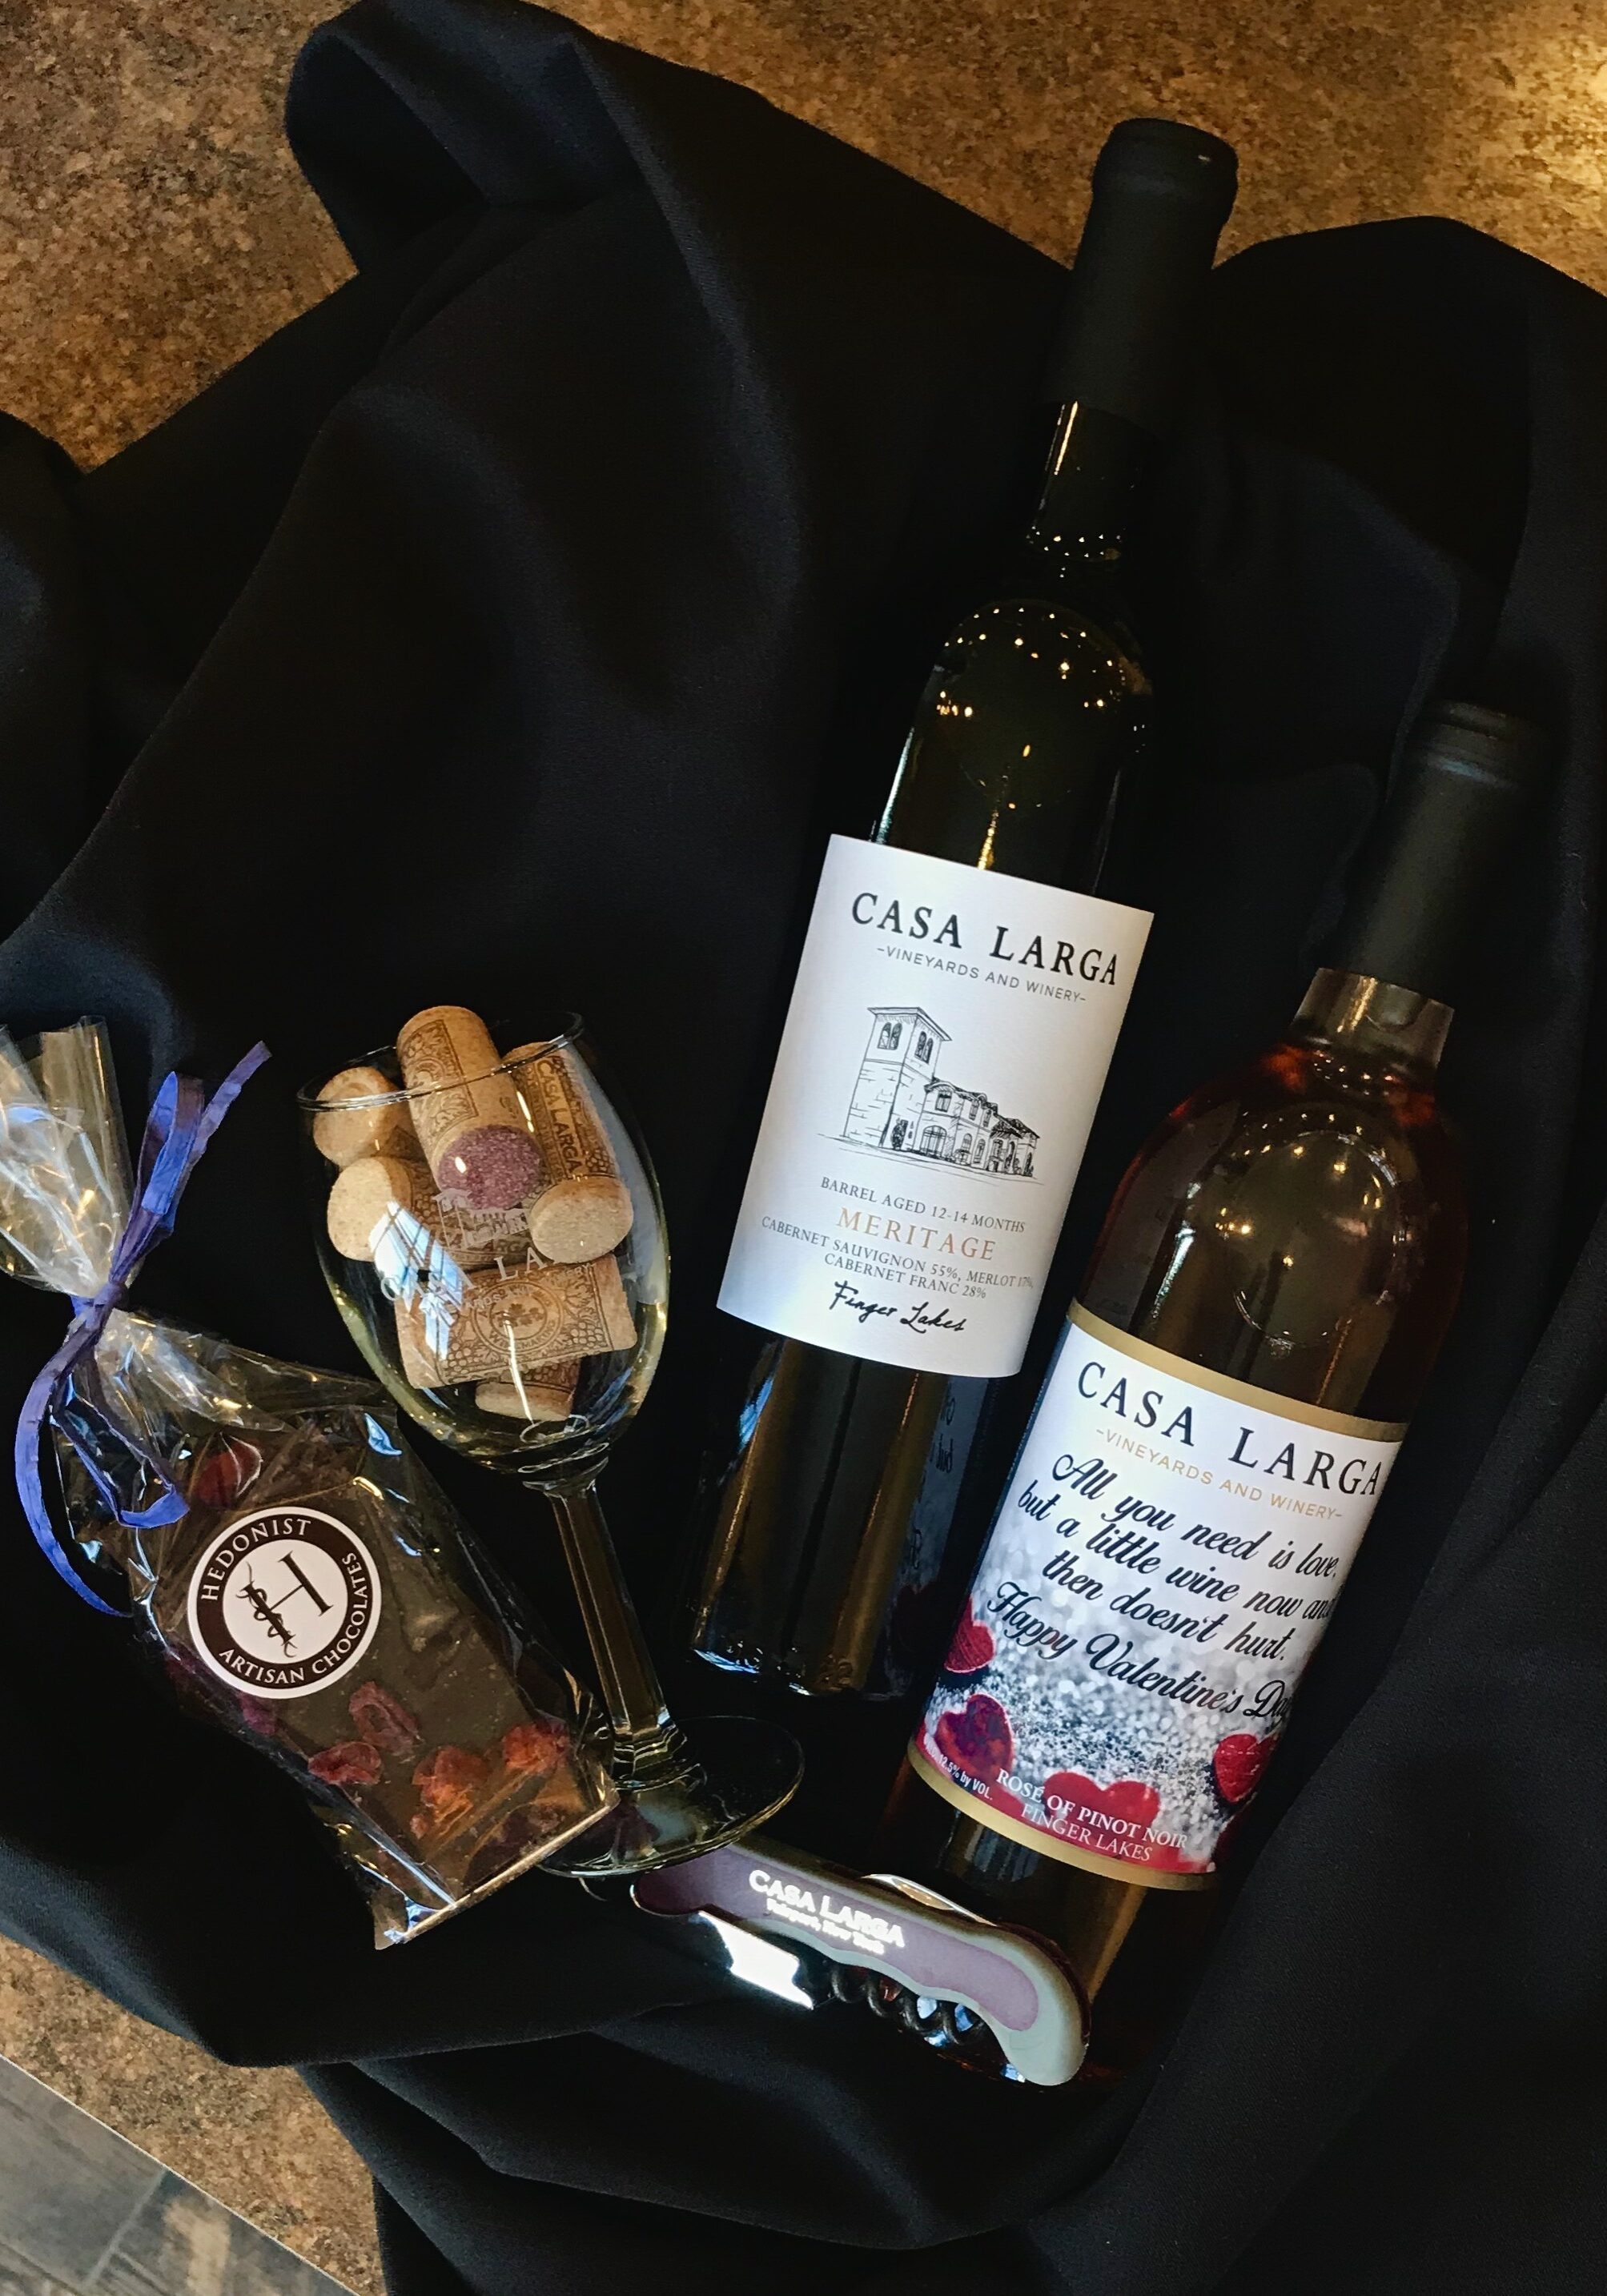 Valentine's Day Basket, Varying Wines and Chocolates, at Casa Larga Vineyards